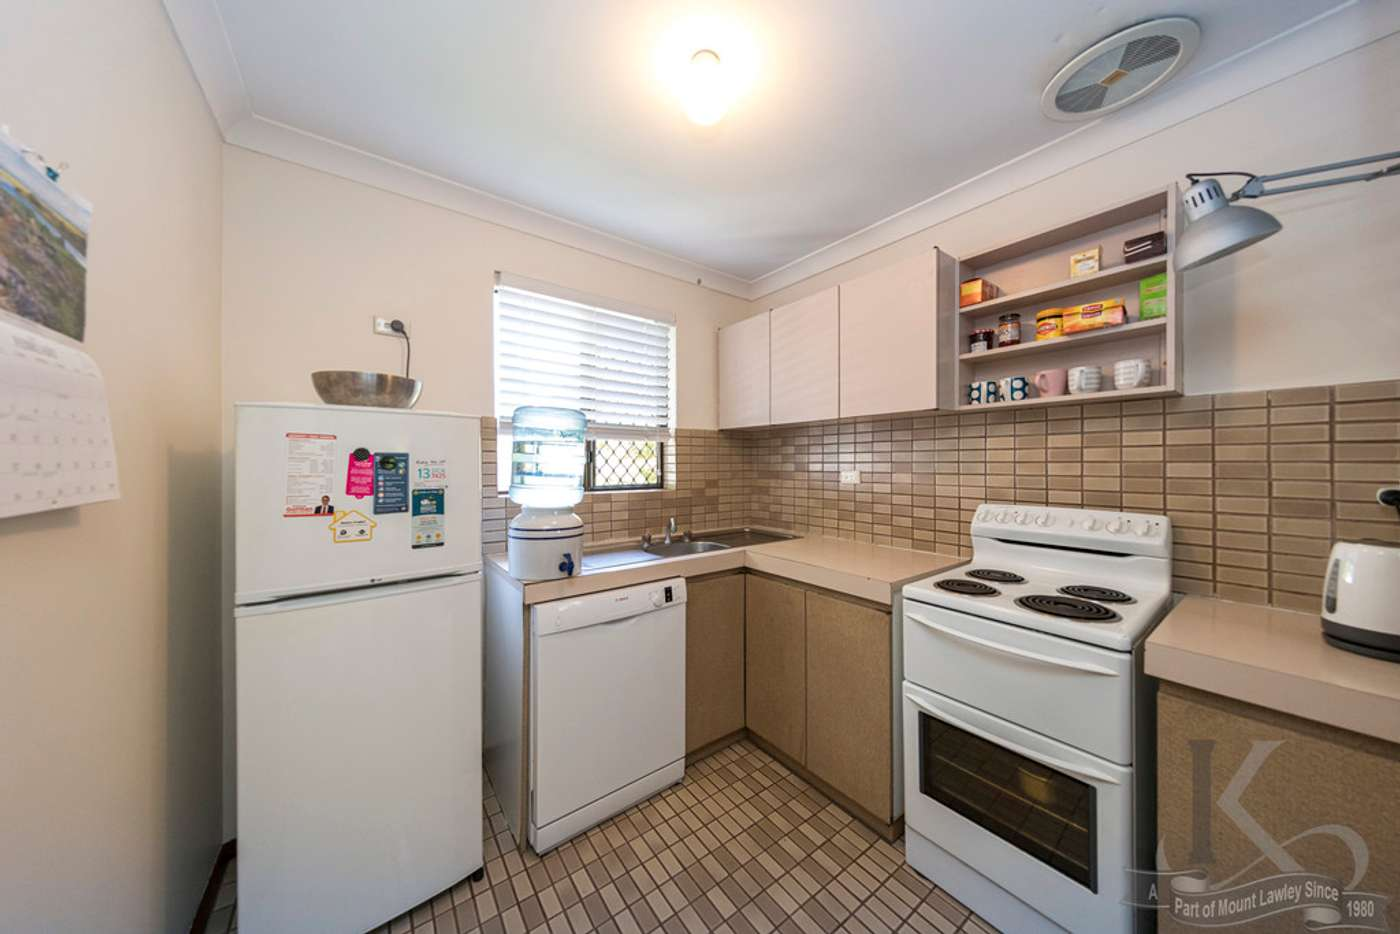 Sixth view of Homely apartment listing, 10/555 William Street, Mount Lawley WA 6050